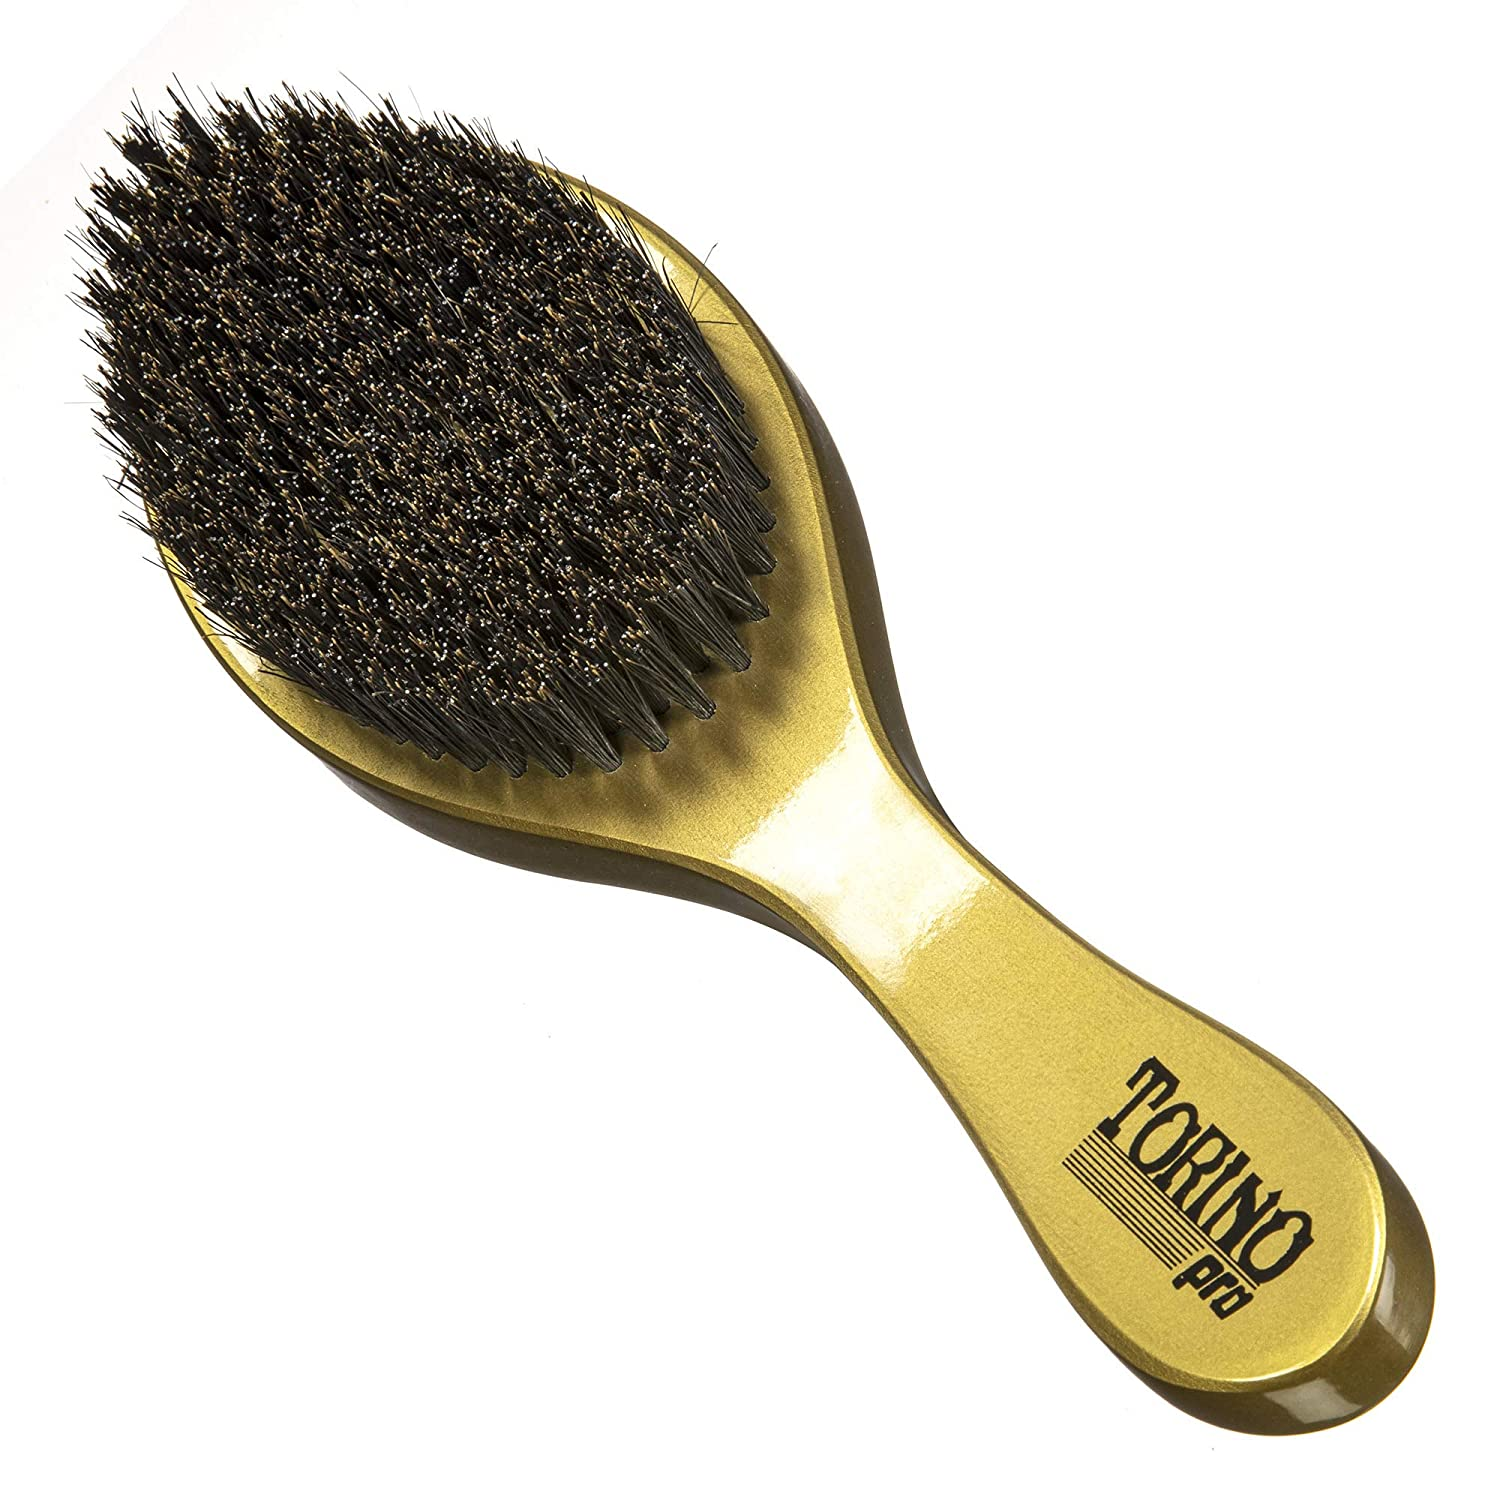 Torino Pro Wave Brush #970 By Brush King - Medium Hard Curve 360 Waves Brush - Great for Wolfing (360 Waves Brushes)